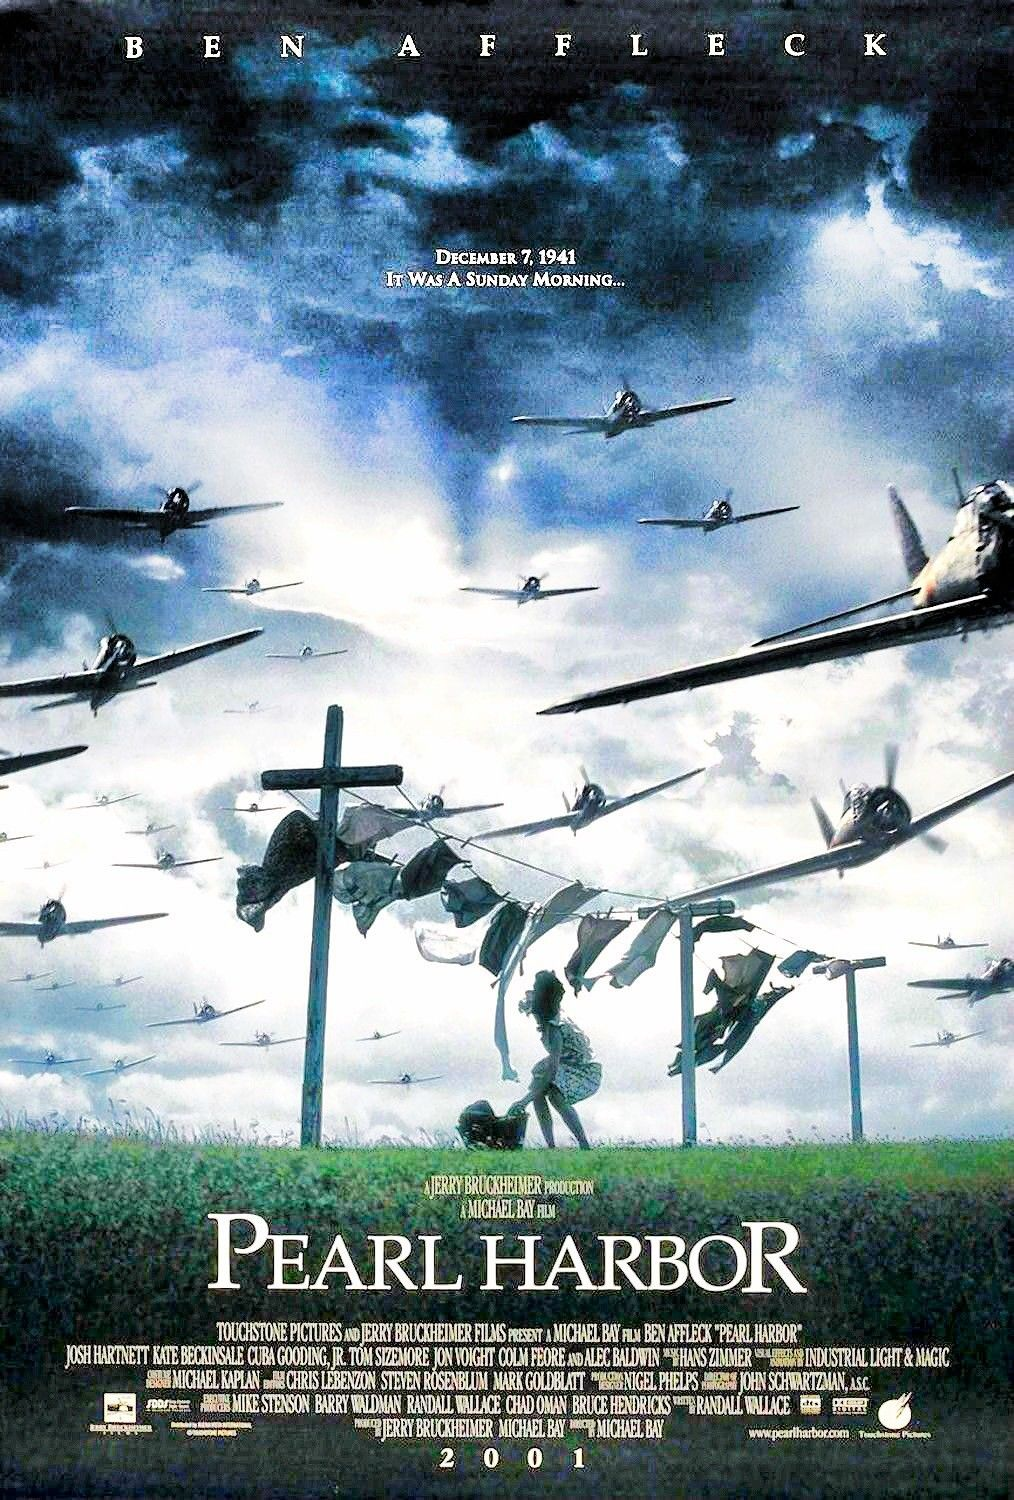 Pin By Liz Bousser On Movie Posters Pearl Harbor Movie Pearl Harbor Touchstone Pictures